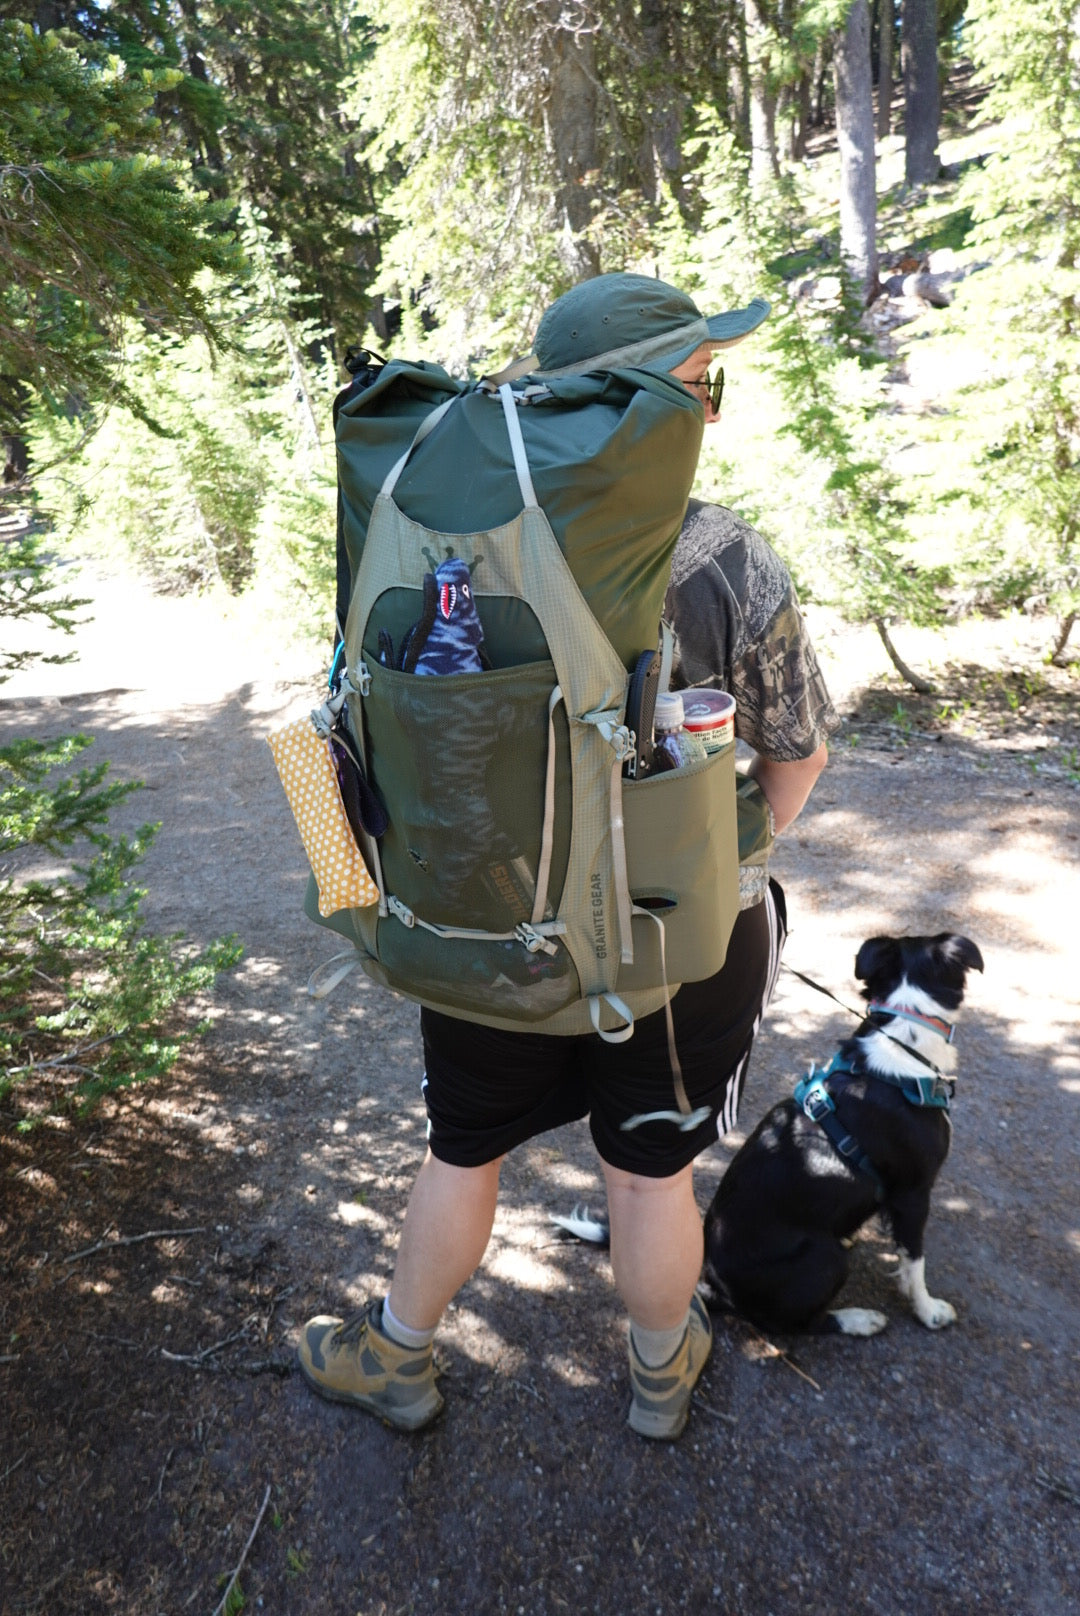 Woman with large backpacking pack stuffed full, with dog in front range harness at her side.